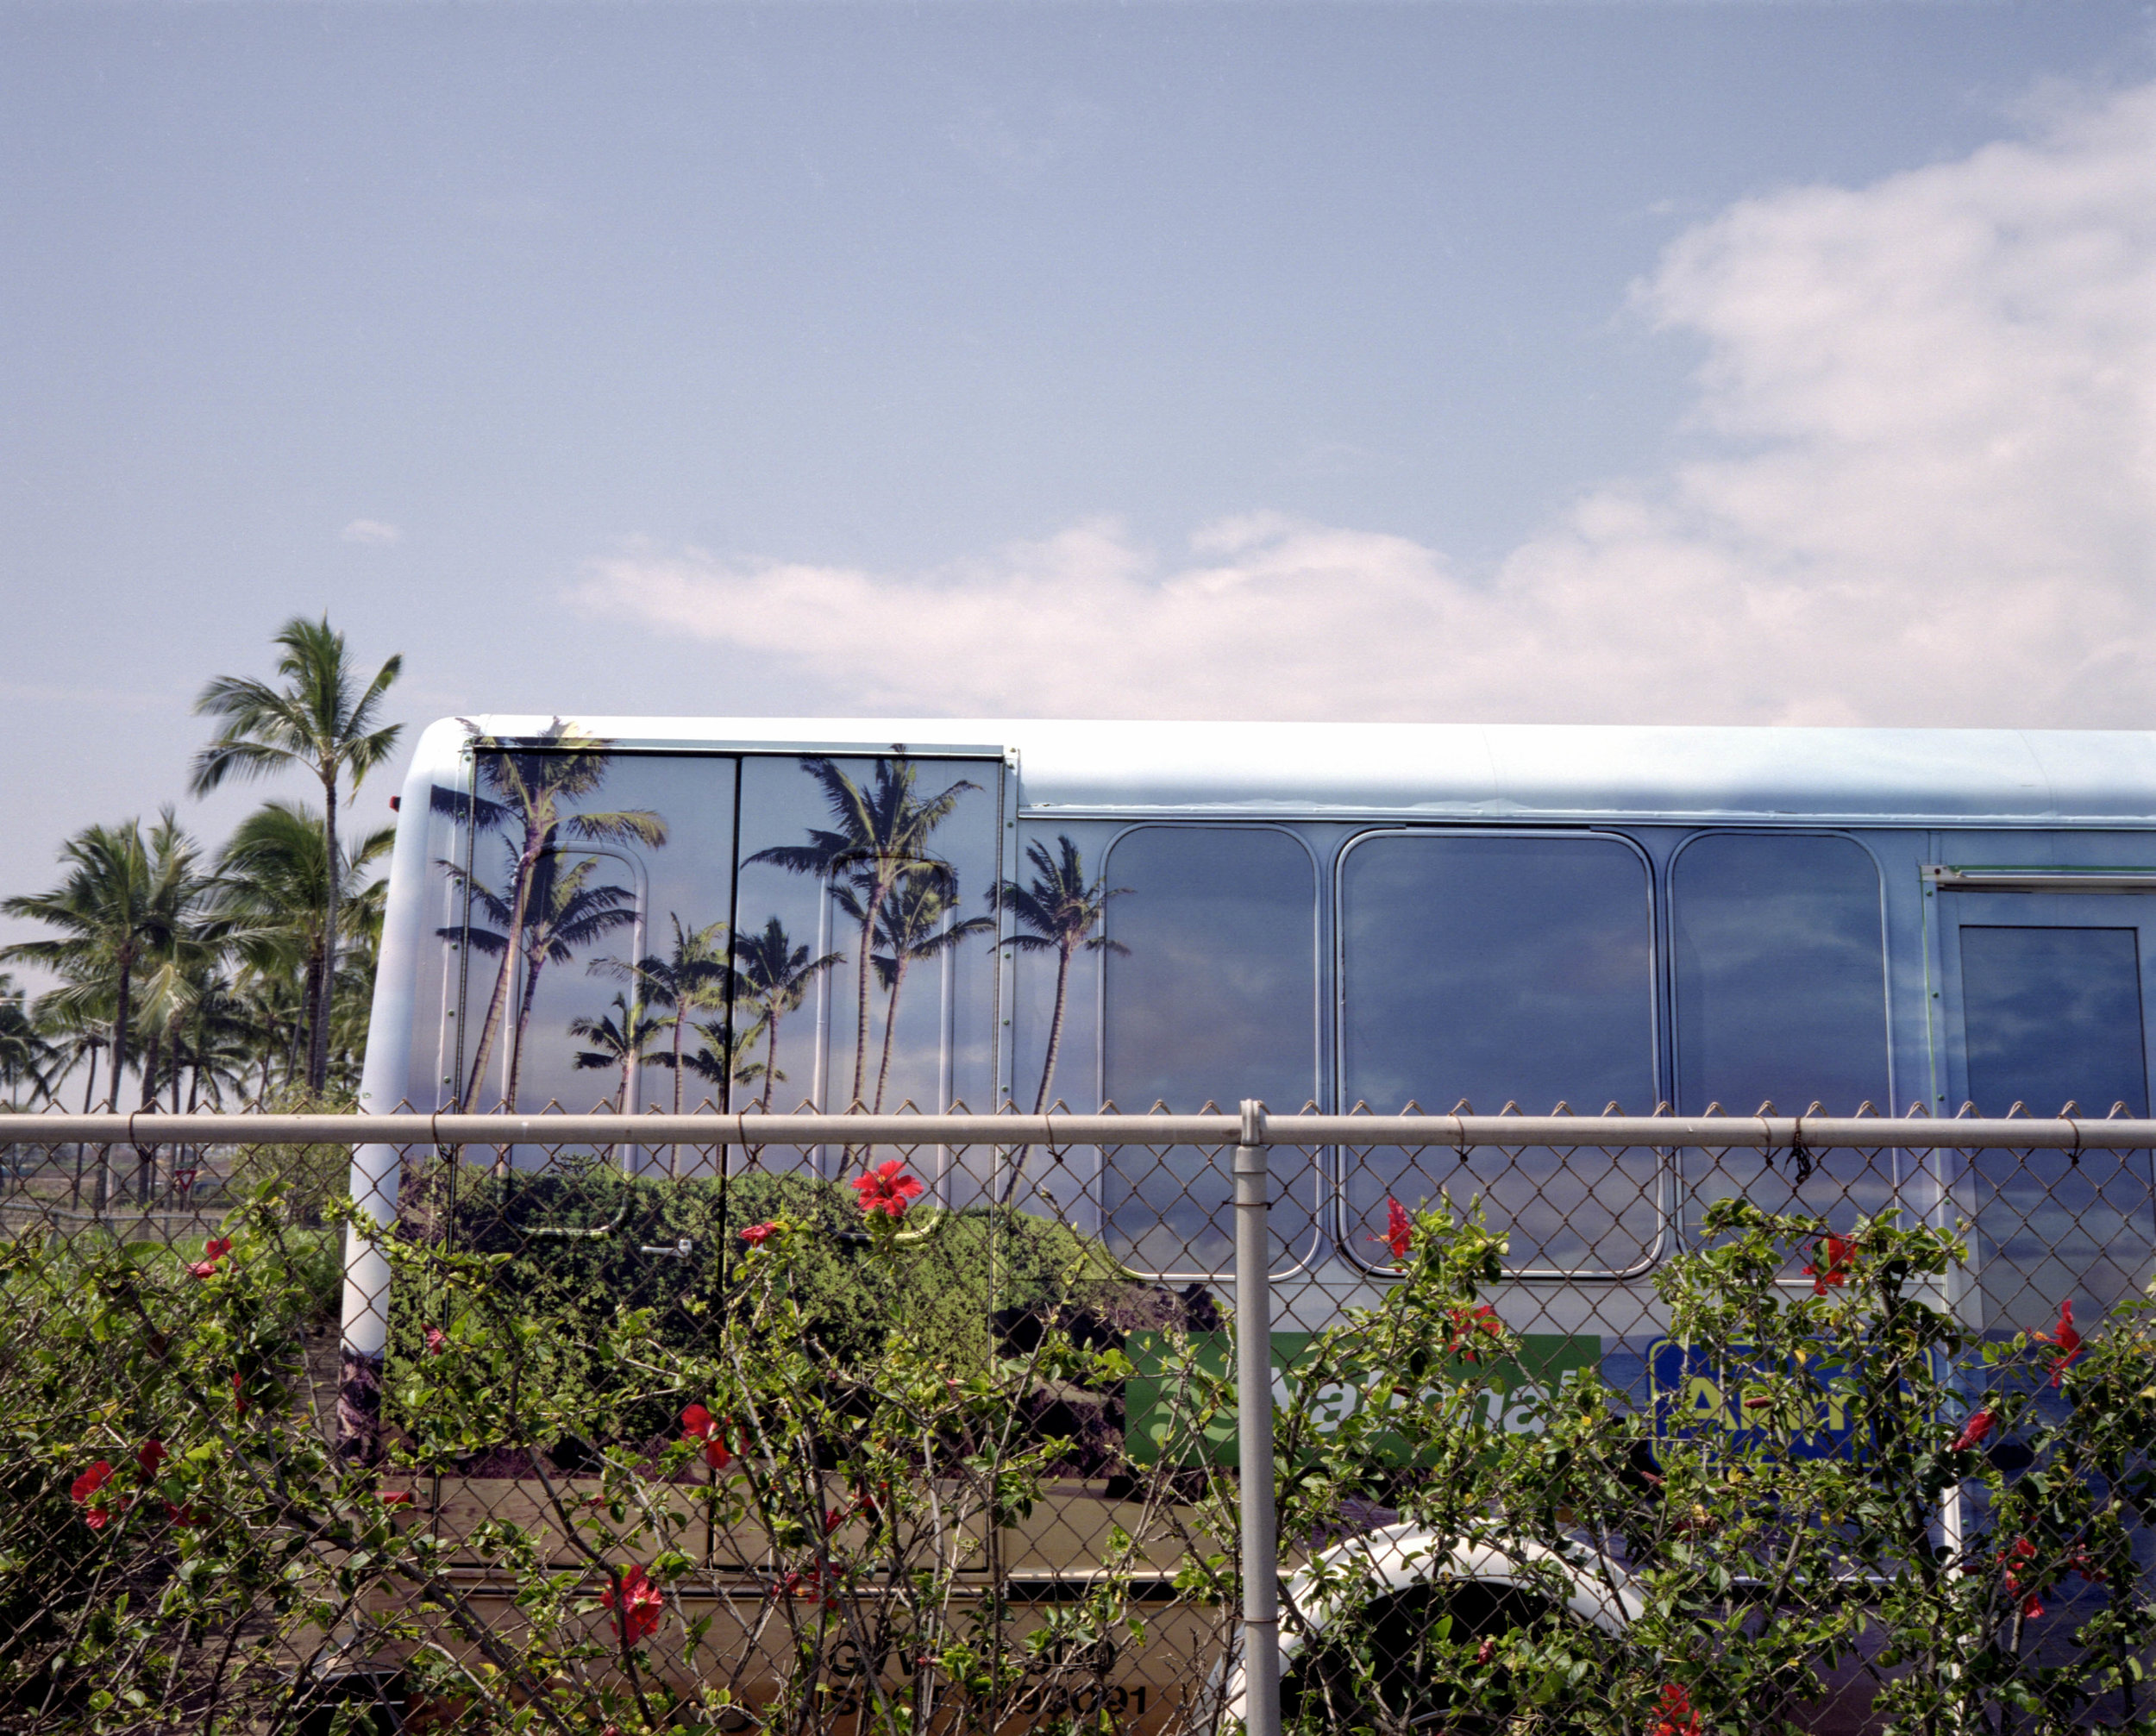 PM-017.hi.palms_bus.jpg